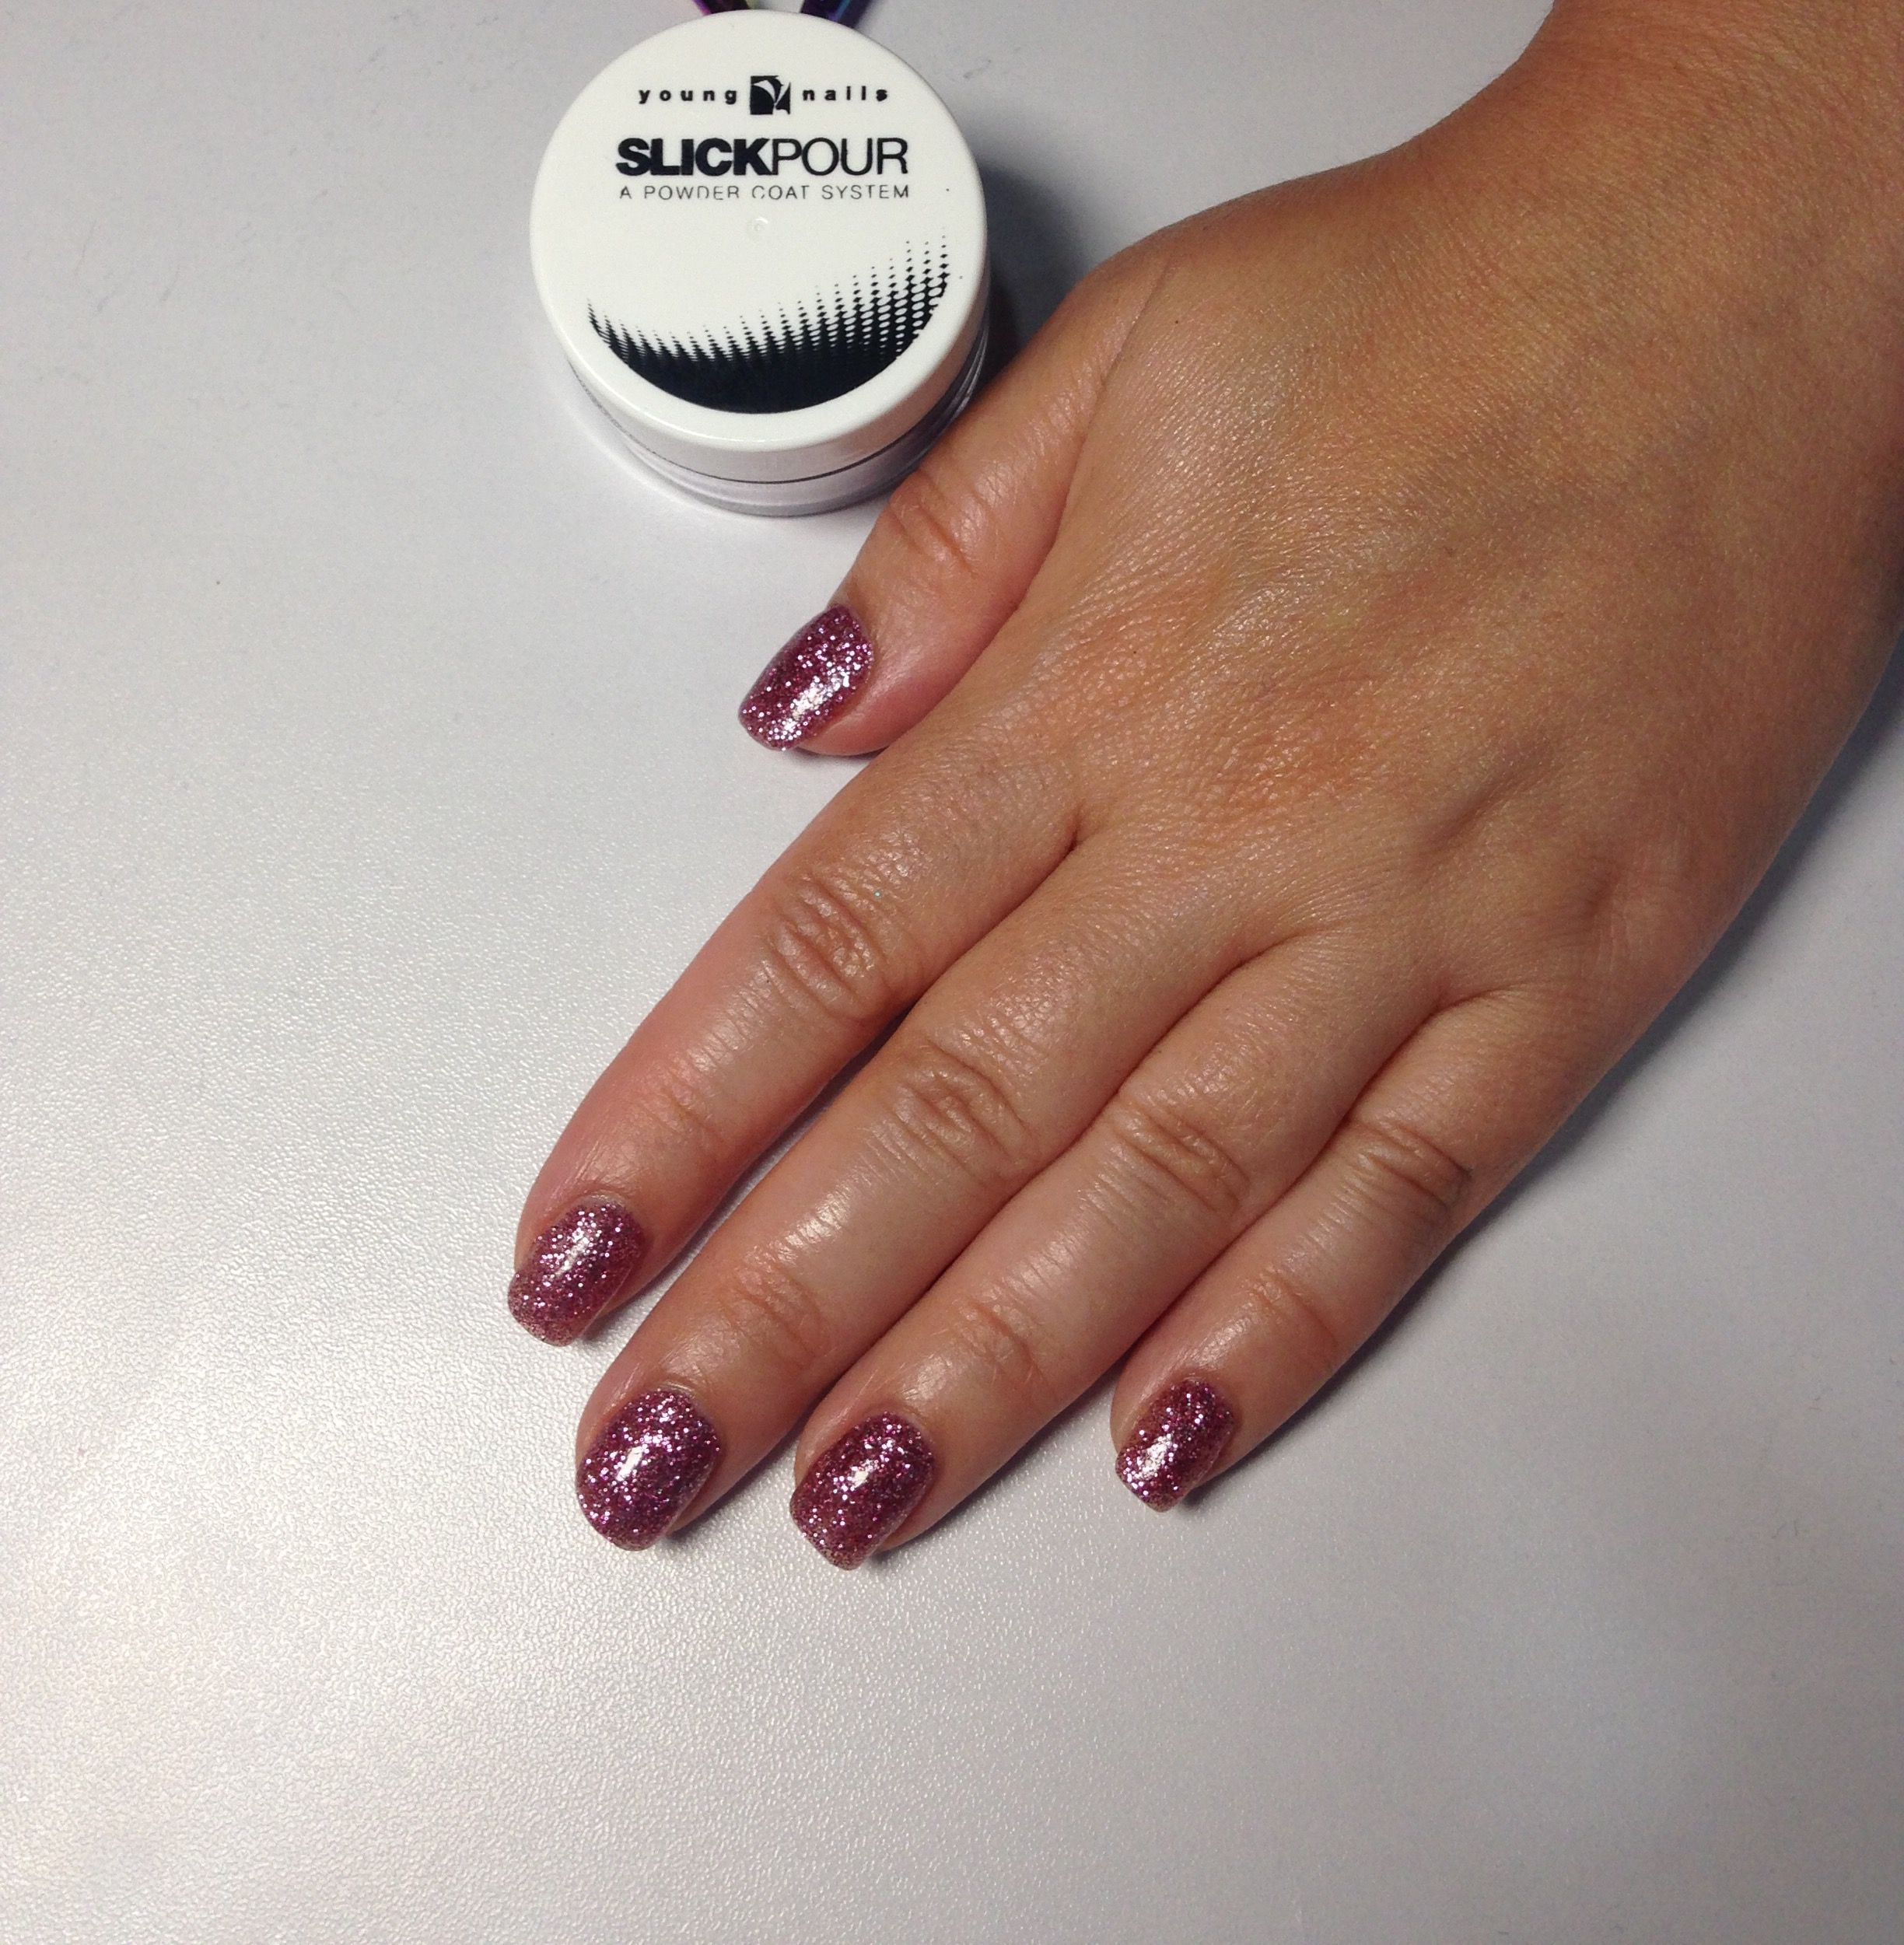 Acrylic Dip Systems Make a Comeback | Ombre, Dipped nails and Mani pedi